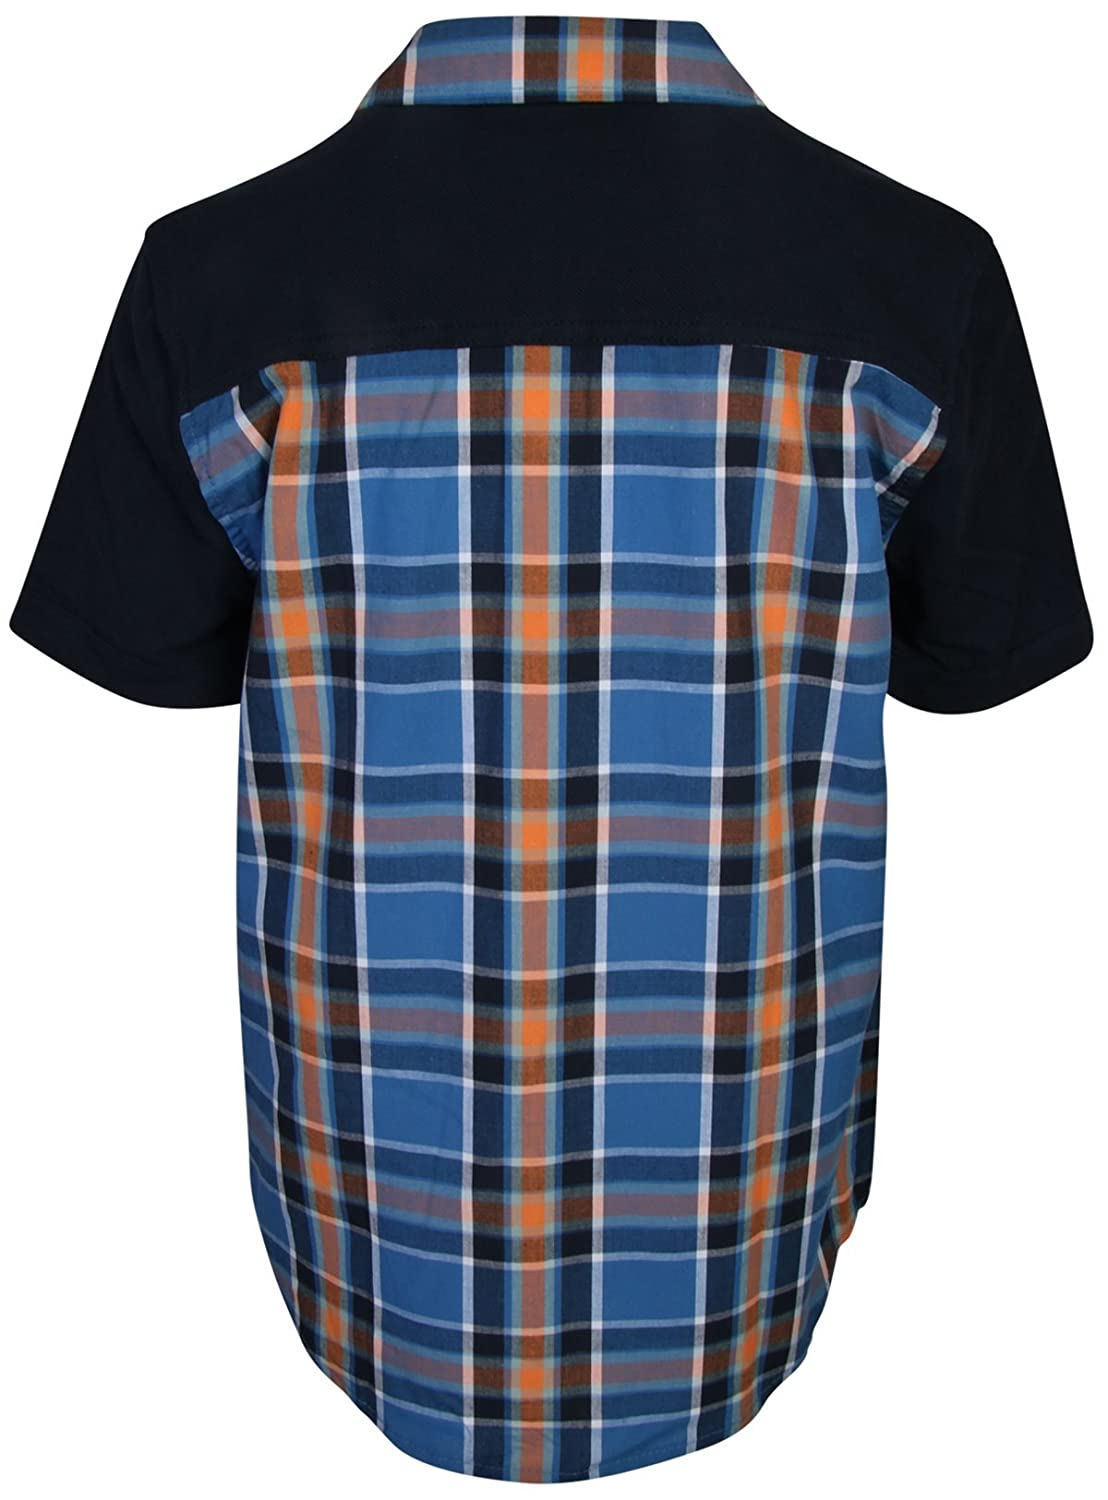 f2622107c8 Amazon.com: p.s. from aeropostale Boys Short Sleeve Button Down ...